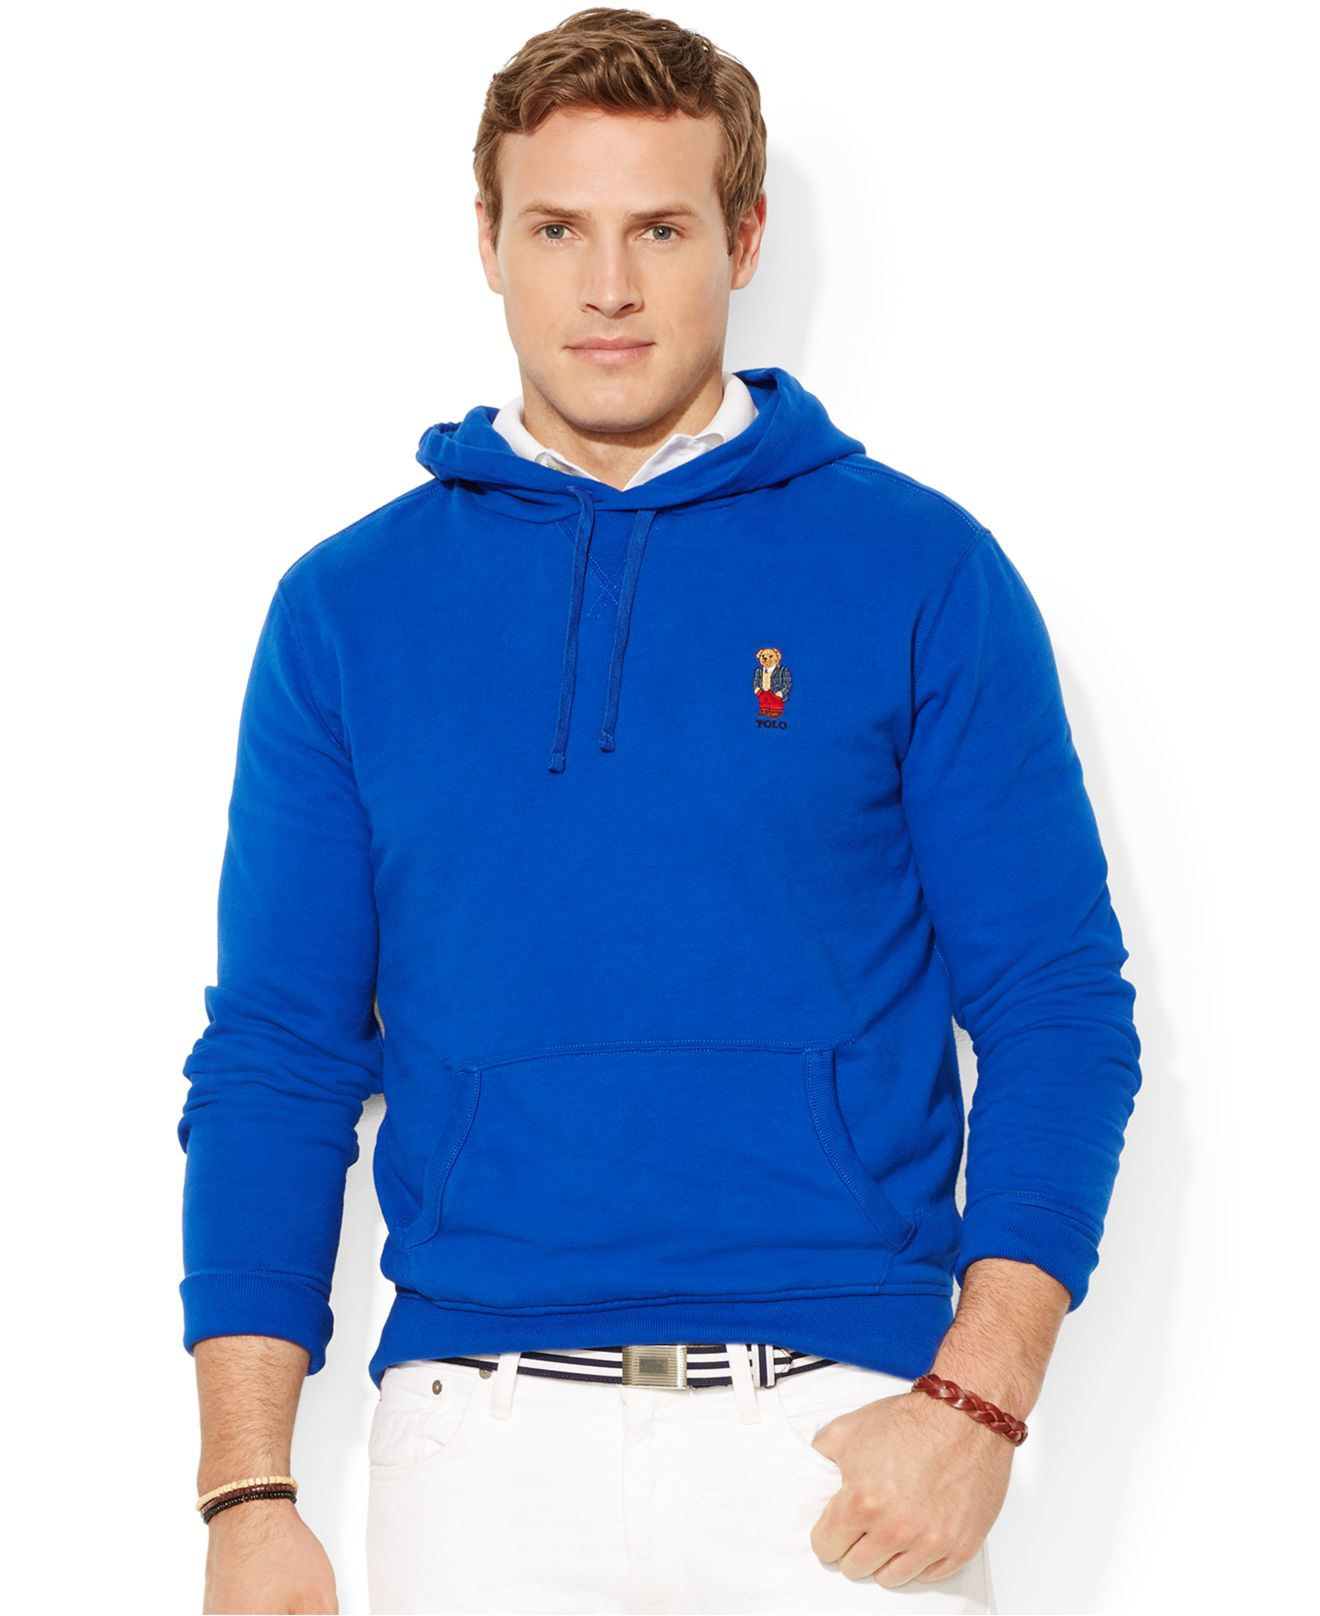 e21498b3a Polo Ralph Lauren Big And Tall Bear Pullover Fleece Hoodie in Blue ...